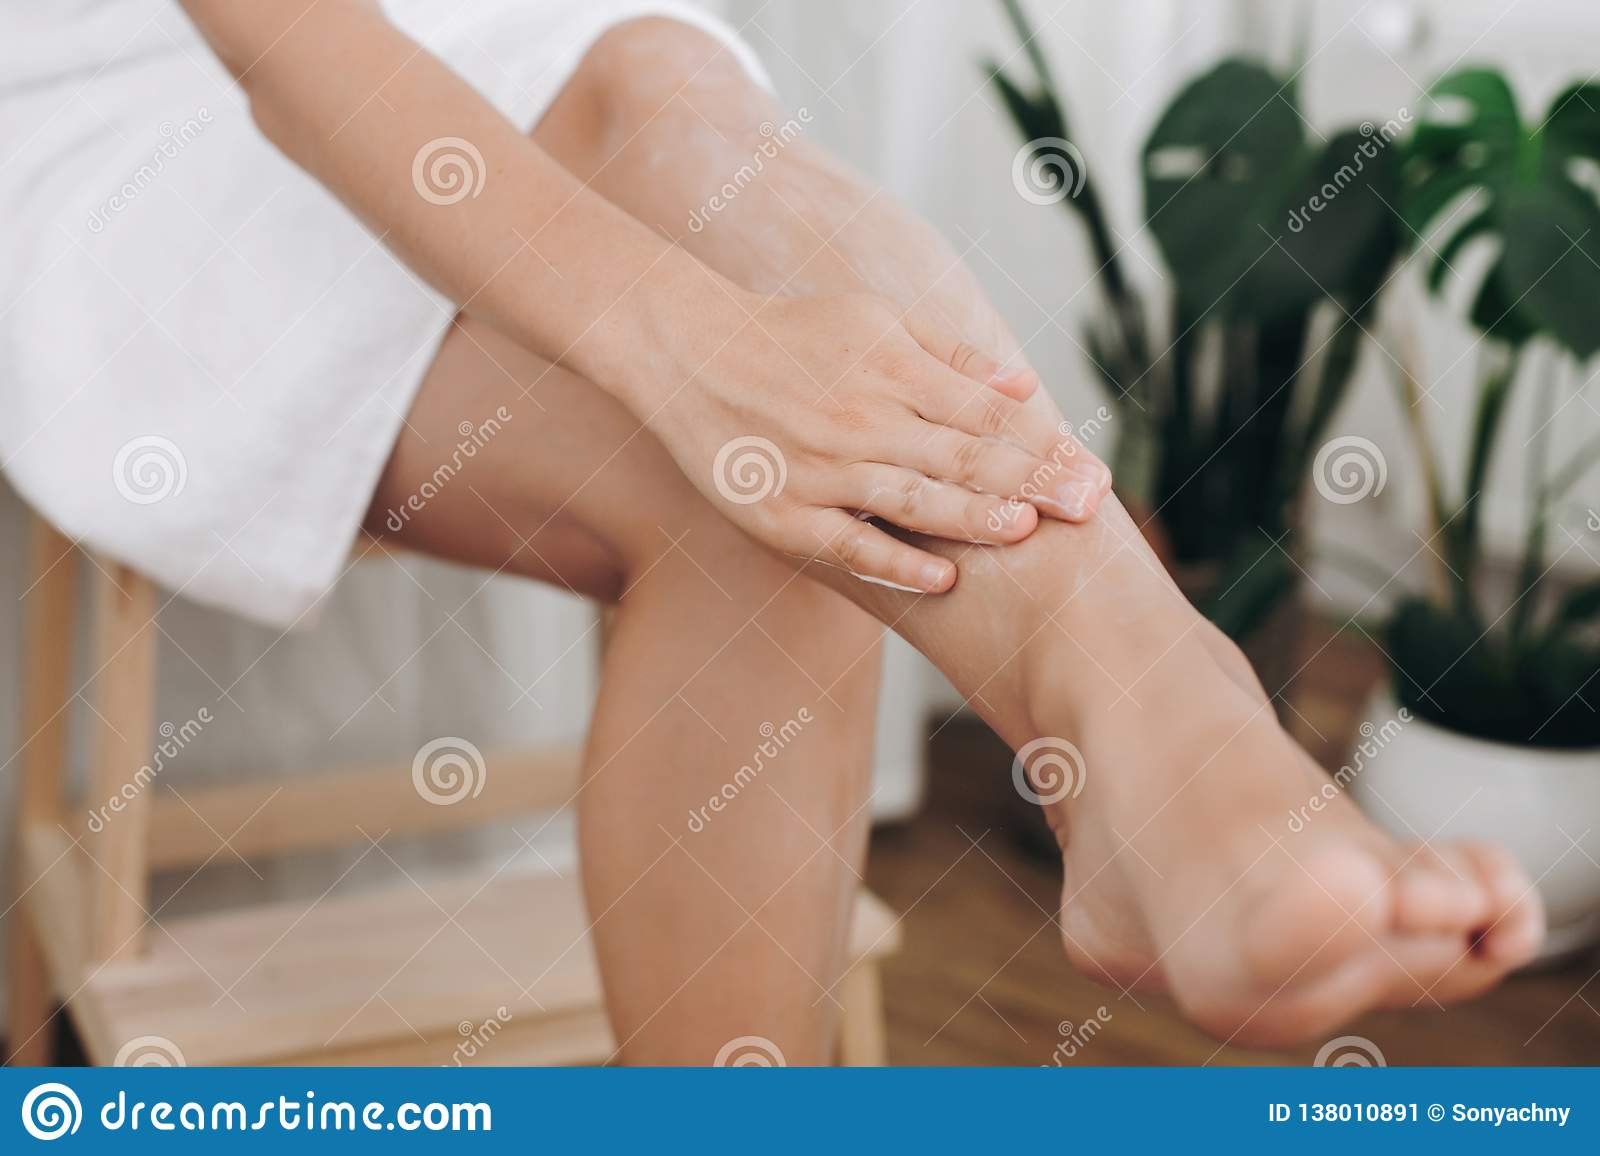 Skin care and wellness concept. Girl hand with moisturizer cream smearing legs for soft skin result. Young woman applying cream on